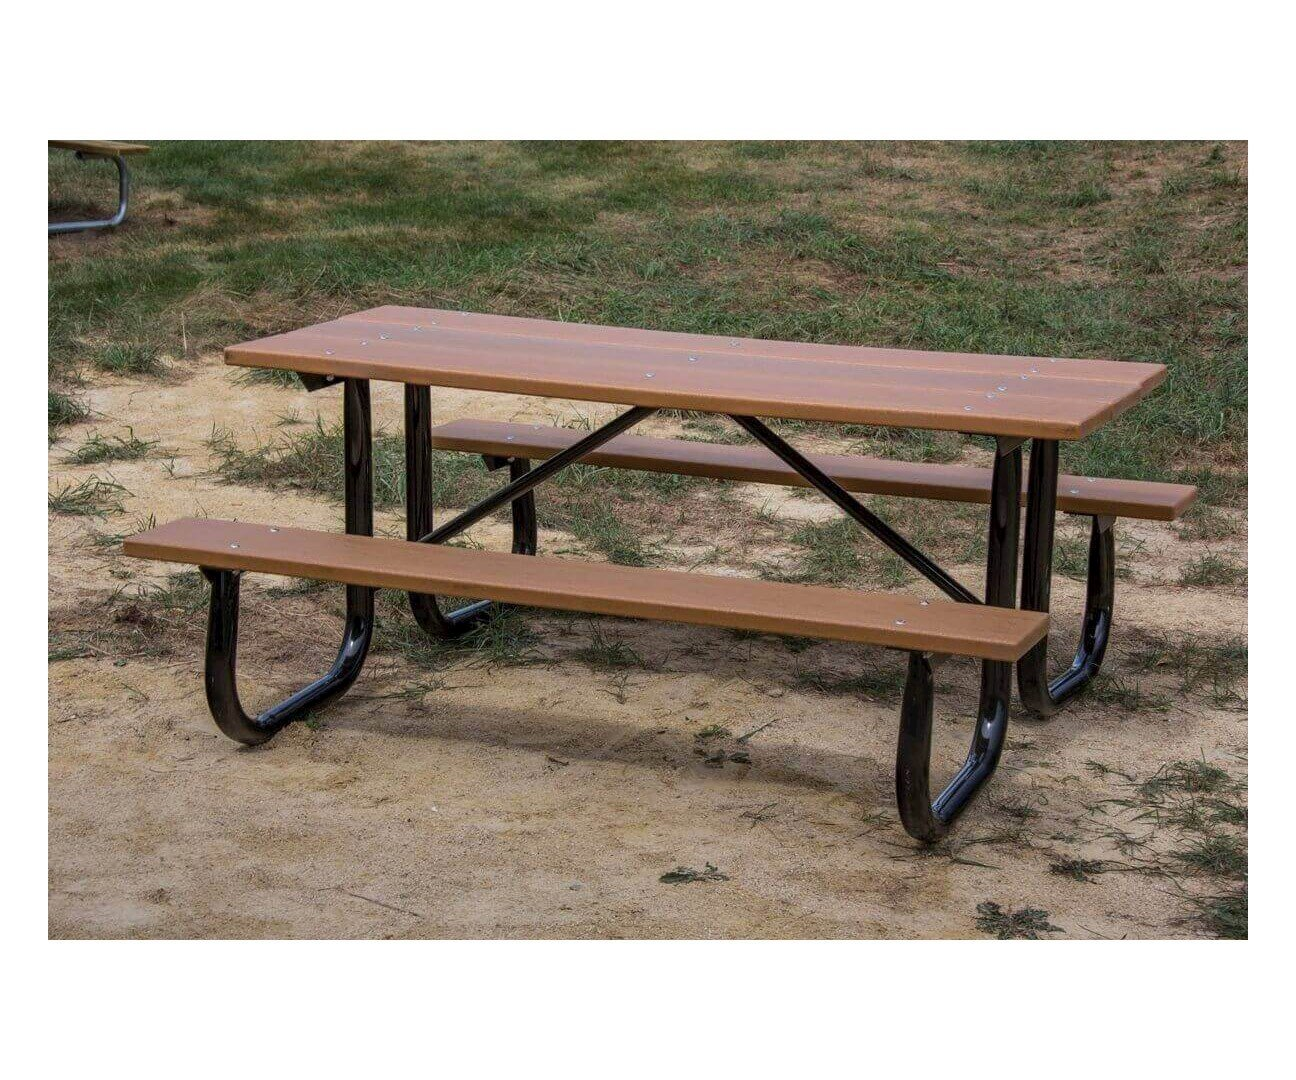 6 ft. heavy duty recycled plastic picnic table with welded